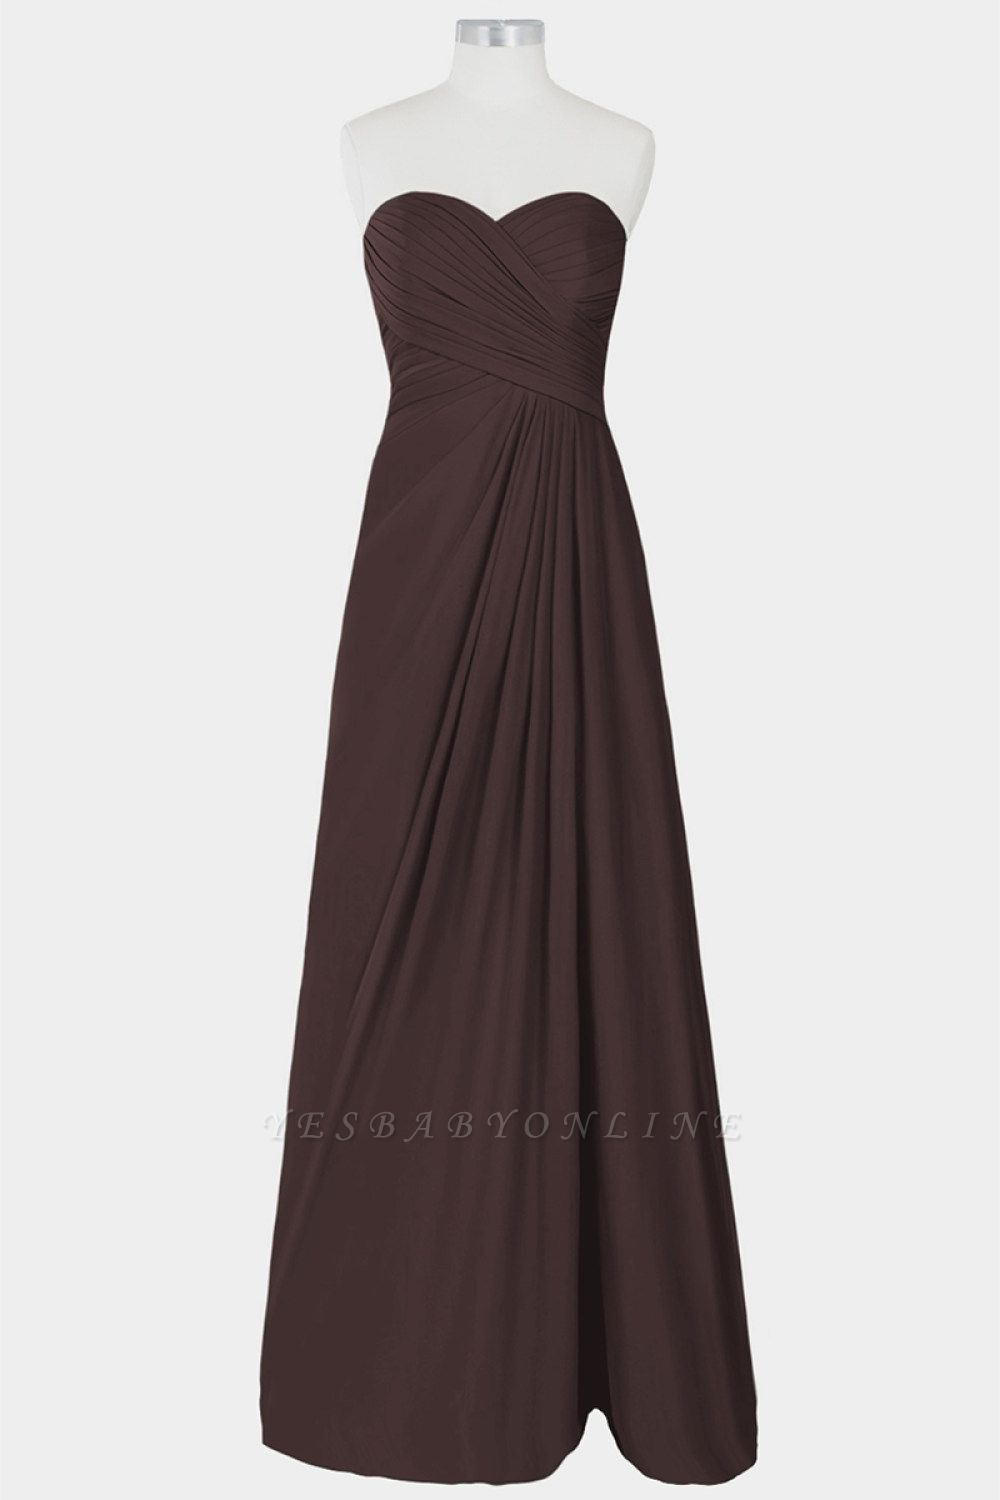 A Line Chiffon Strapless Sweetheart Floor Length Bridesmaid Dresses with Ruffles